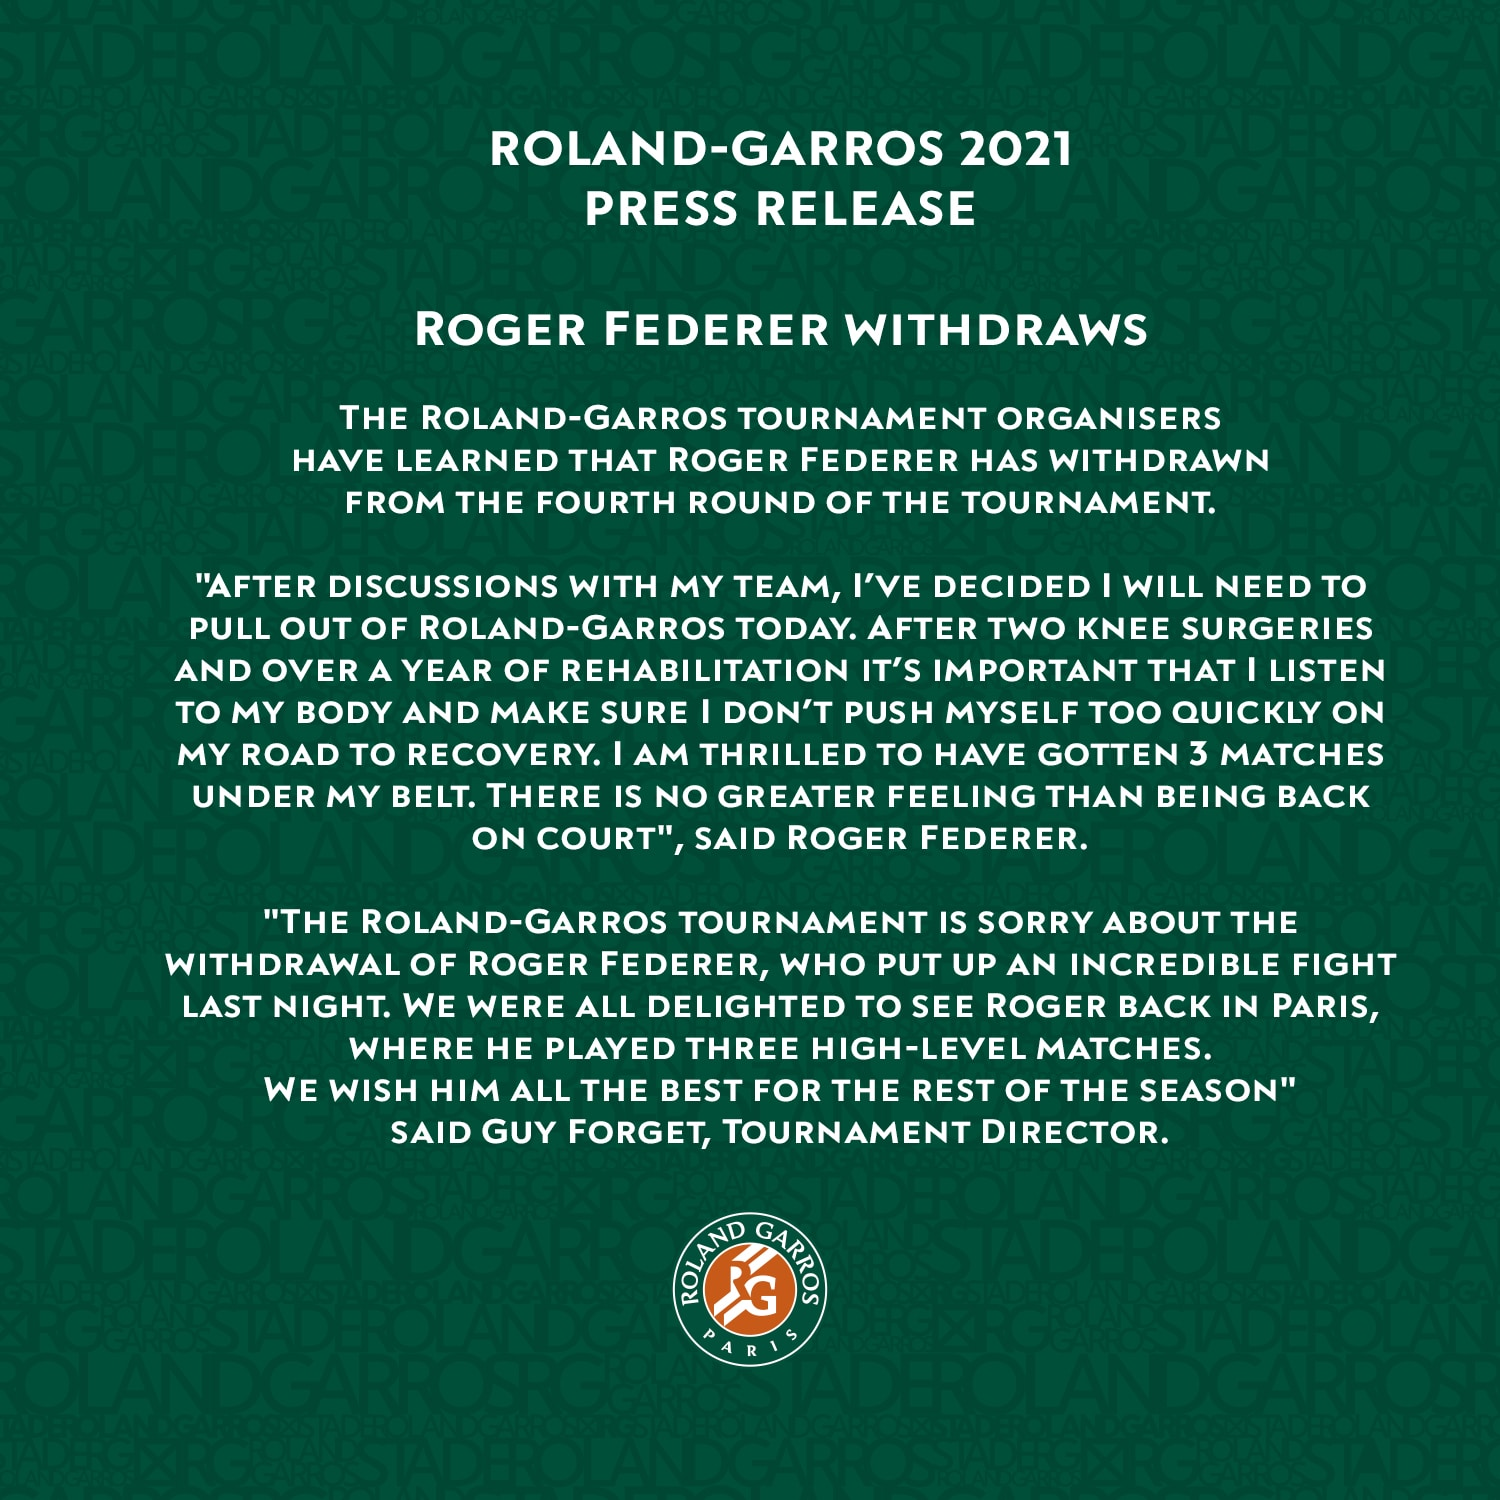 federer withdraw